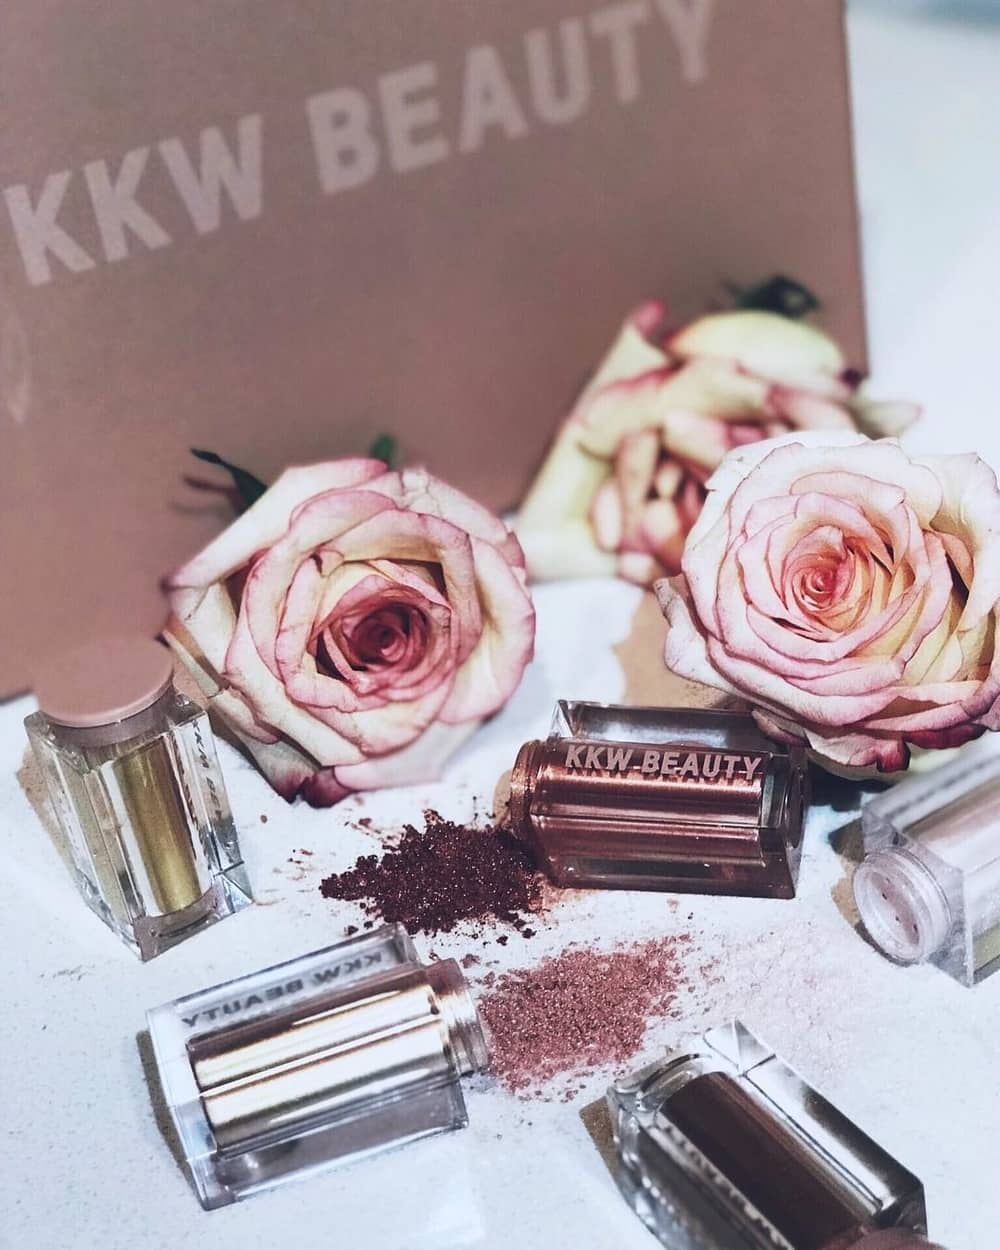 KKW Beauty Meluncurkan Koleksi Ultralight Beams